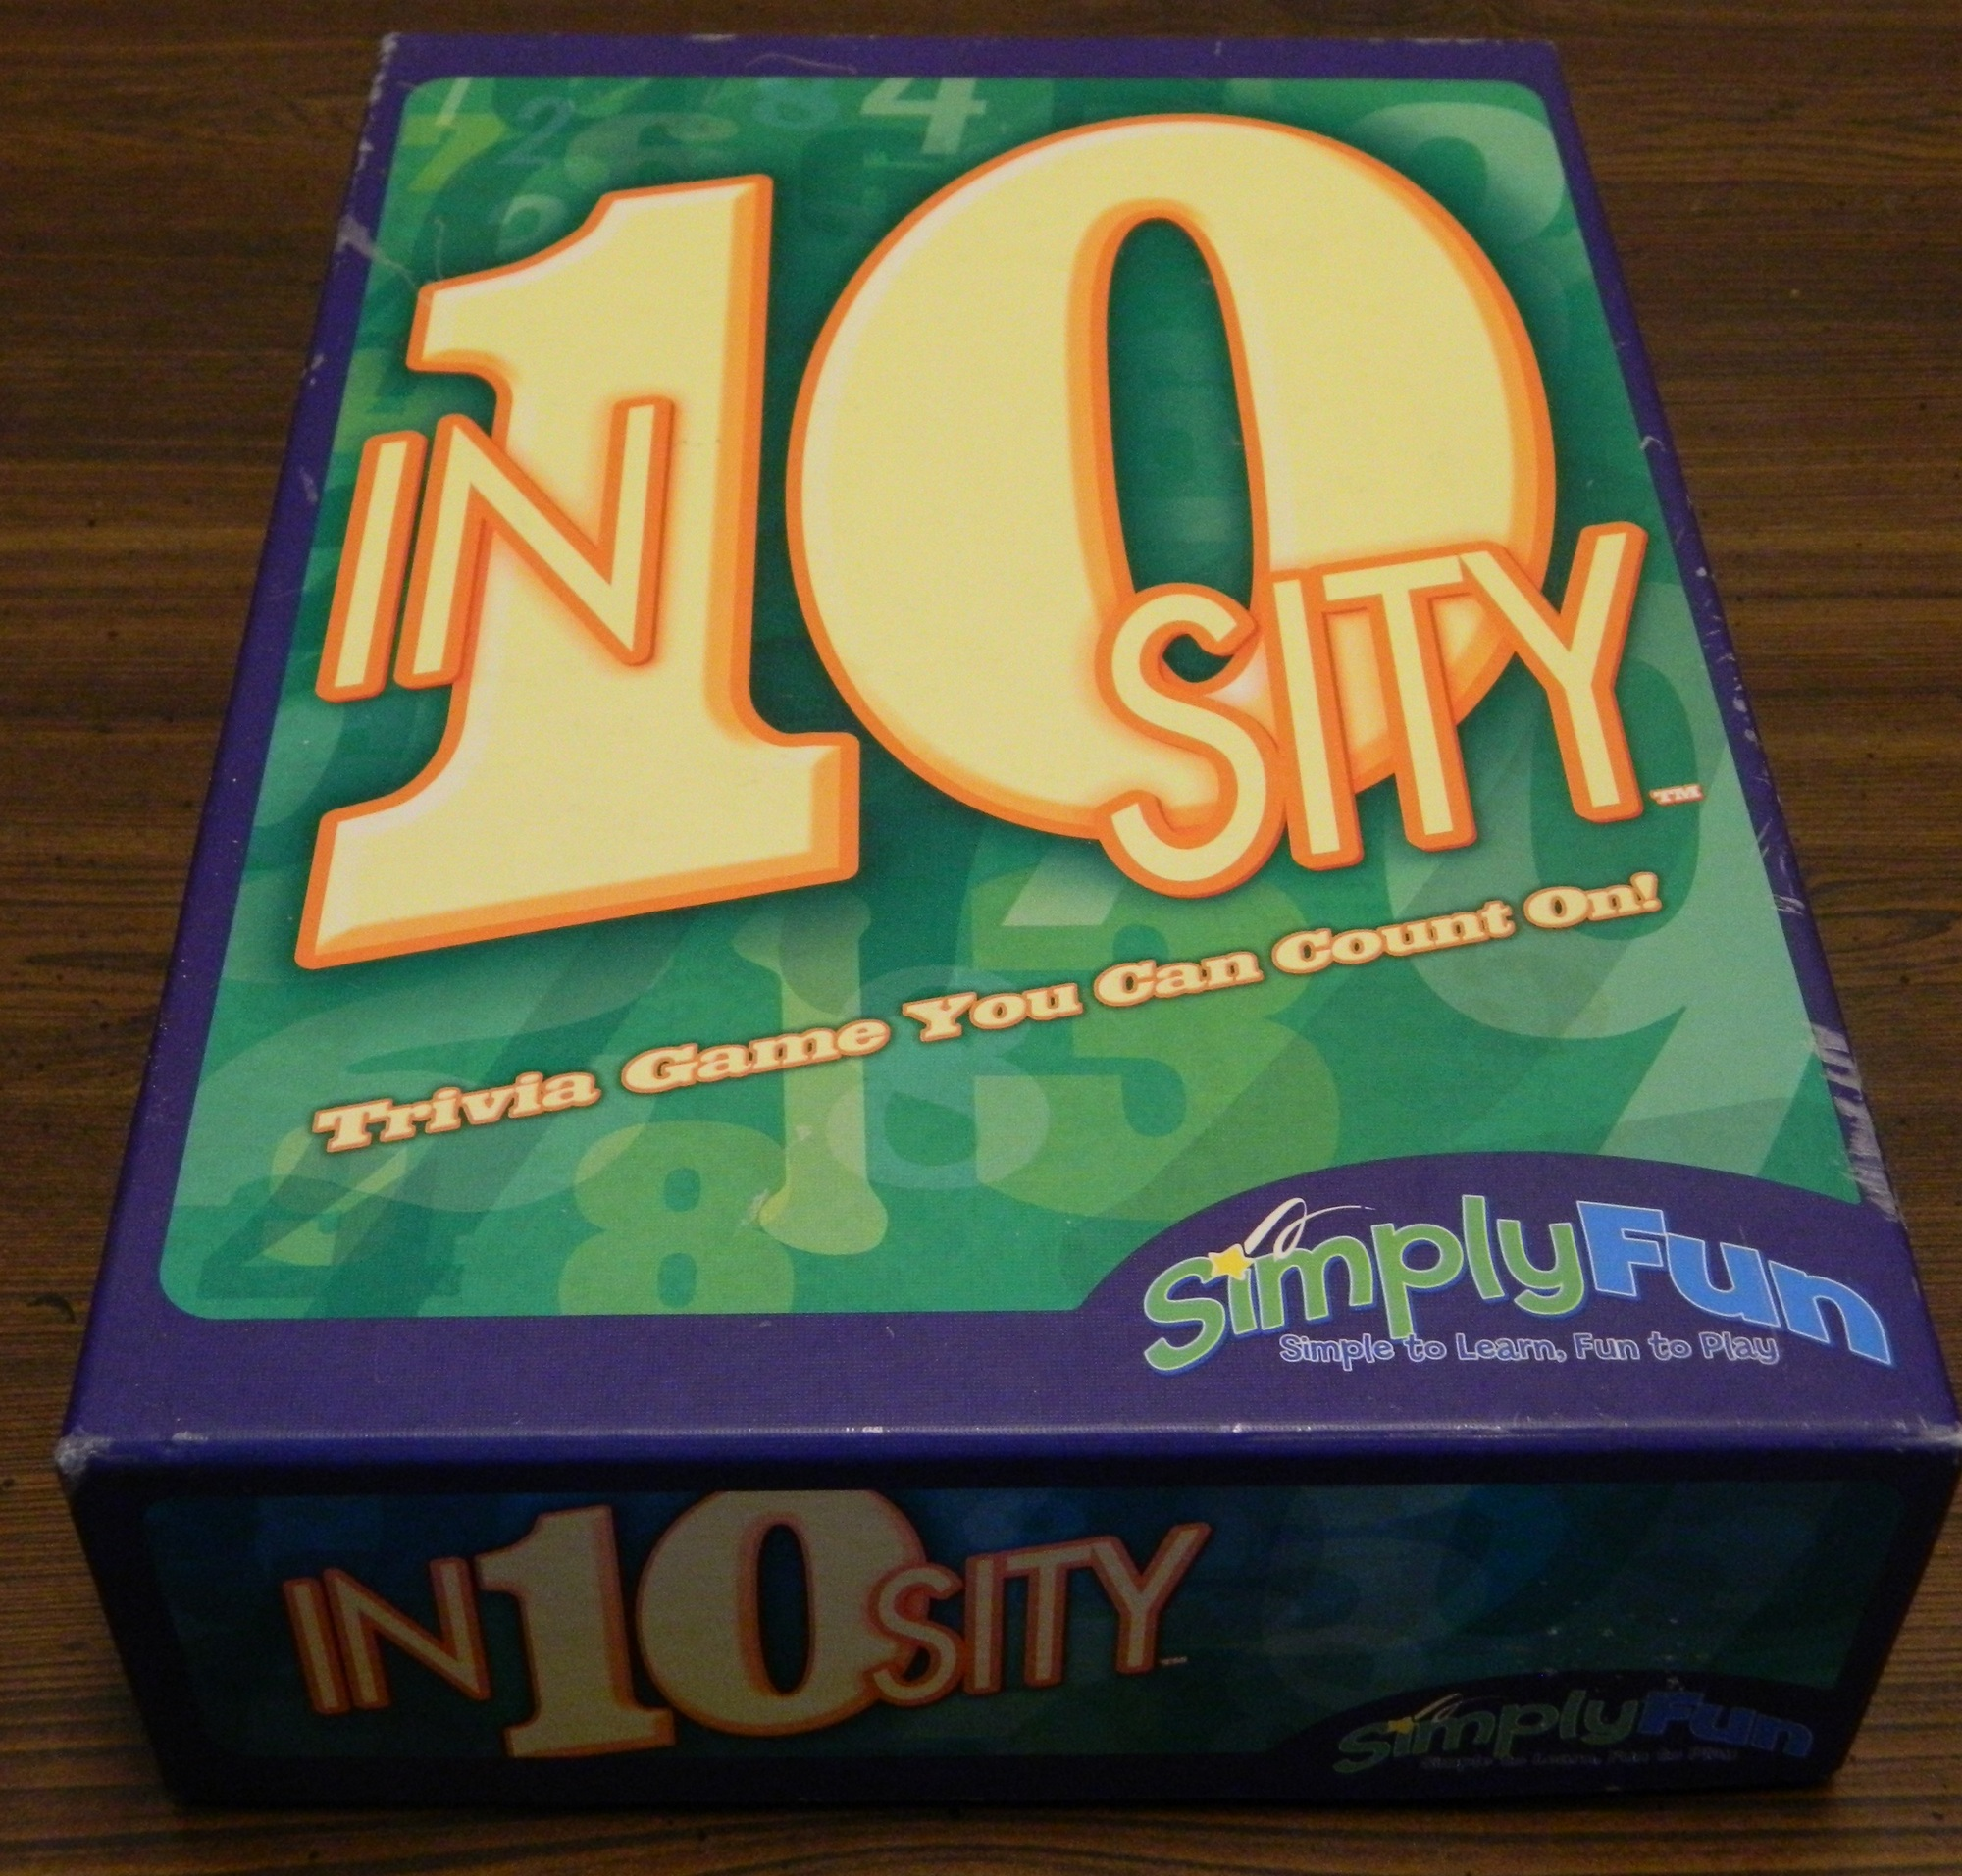 Box for In10sity